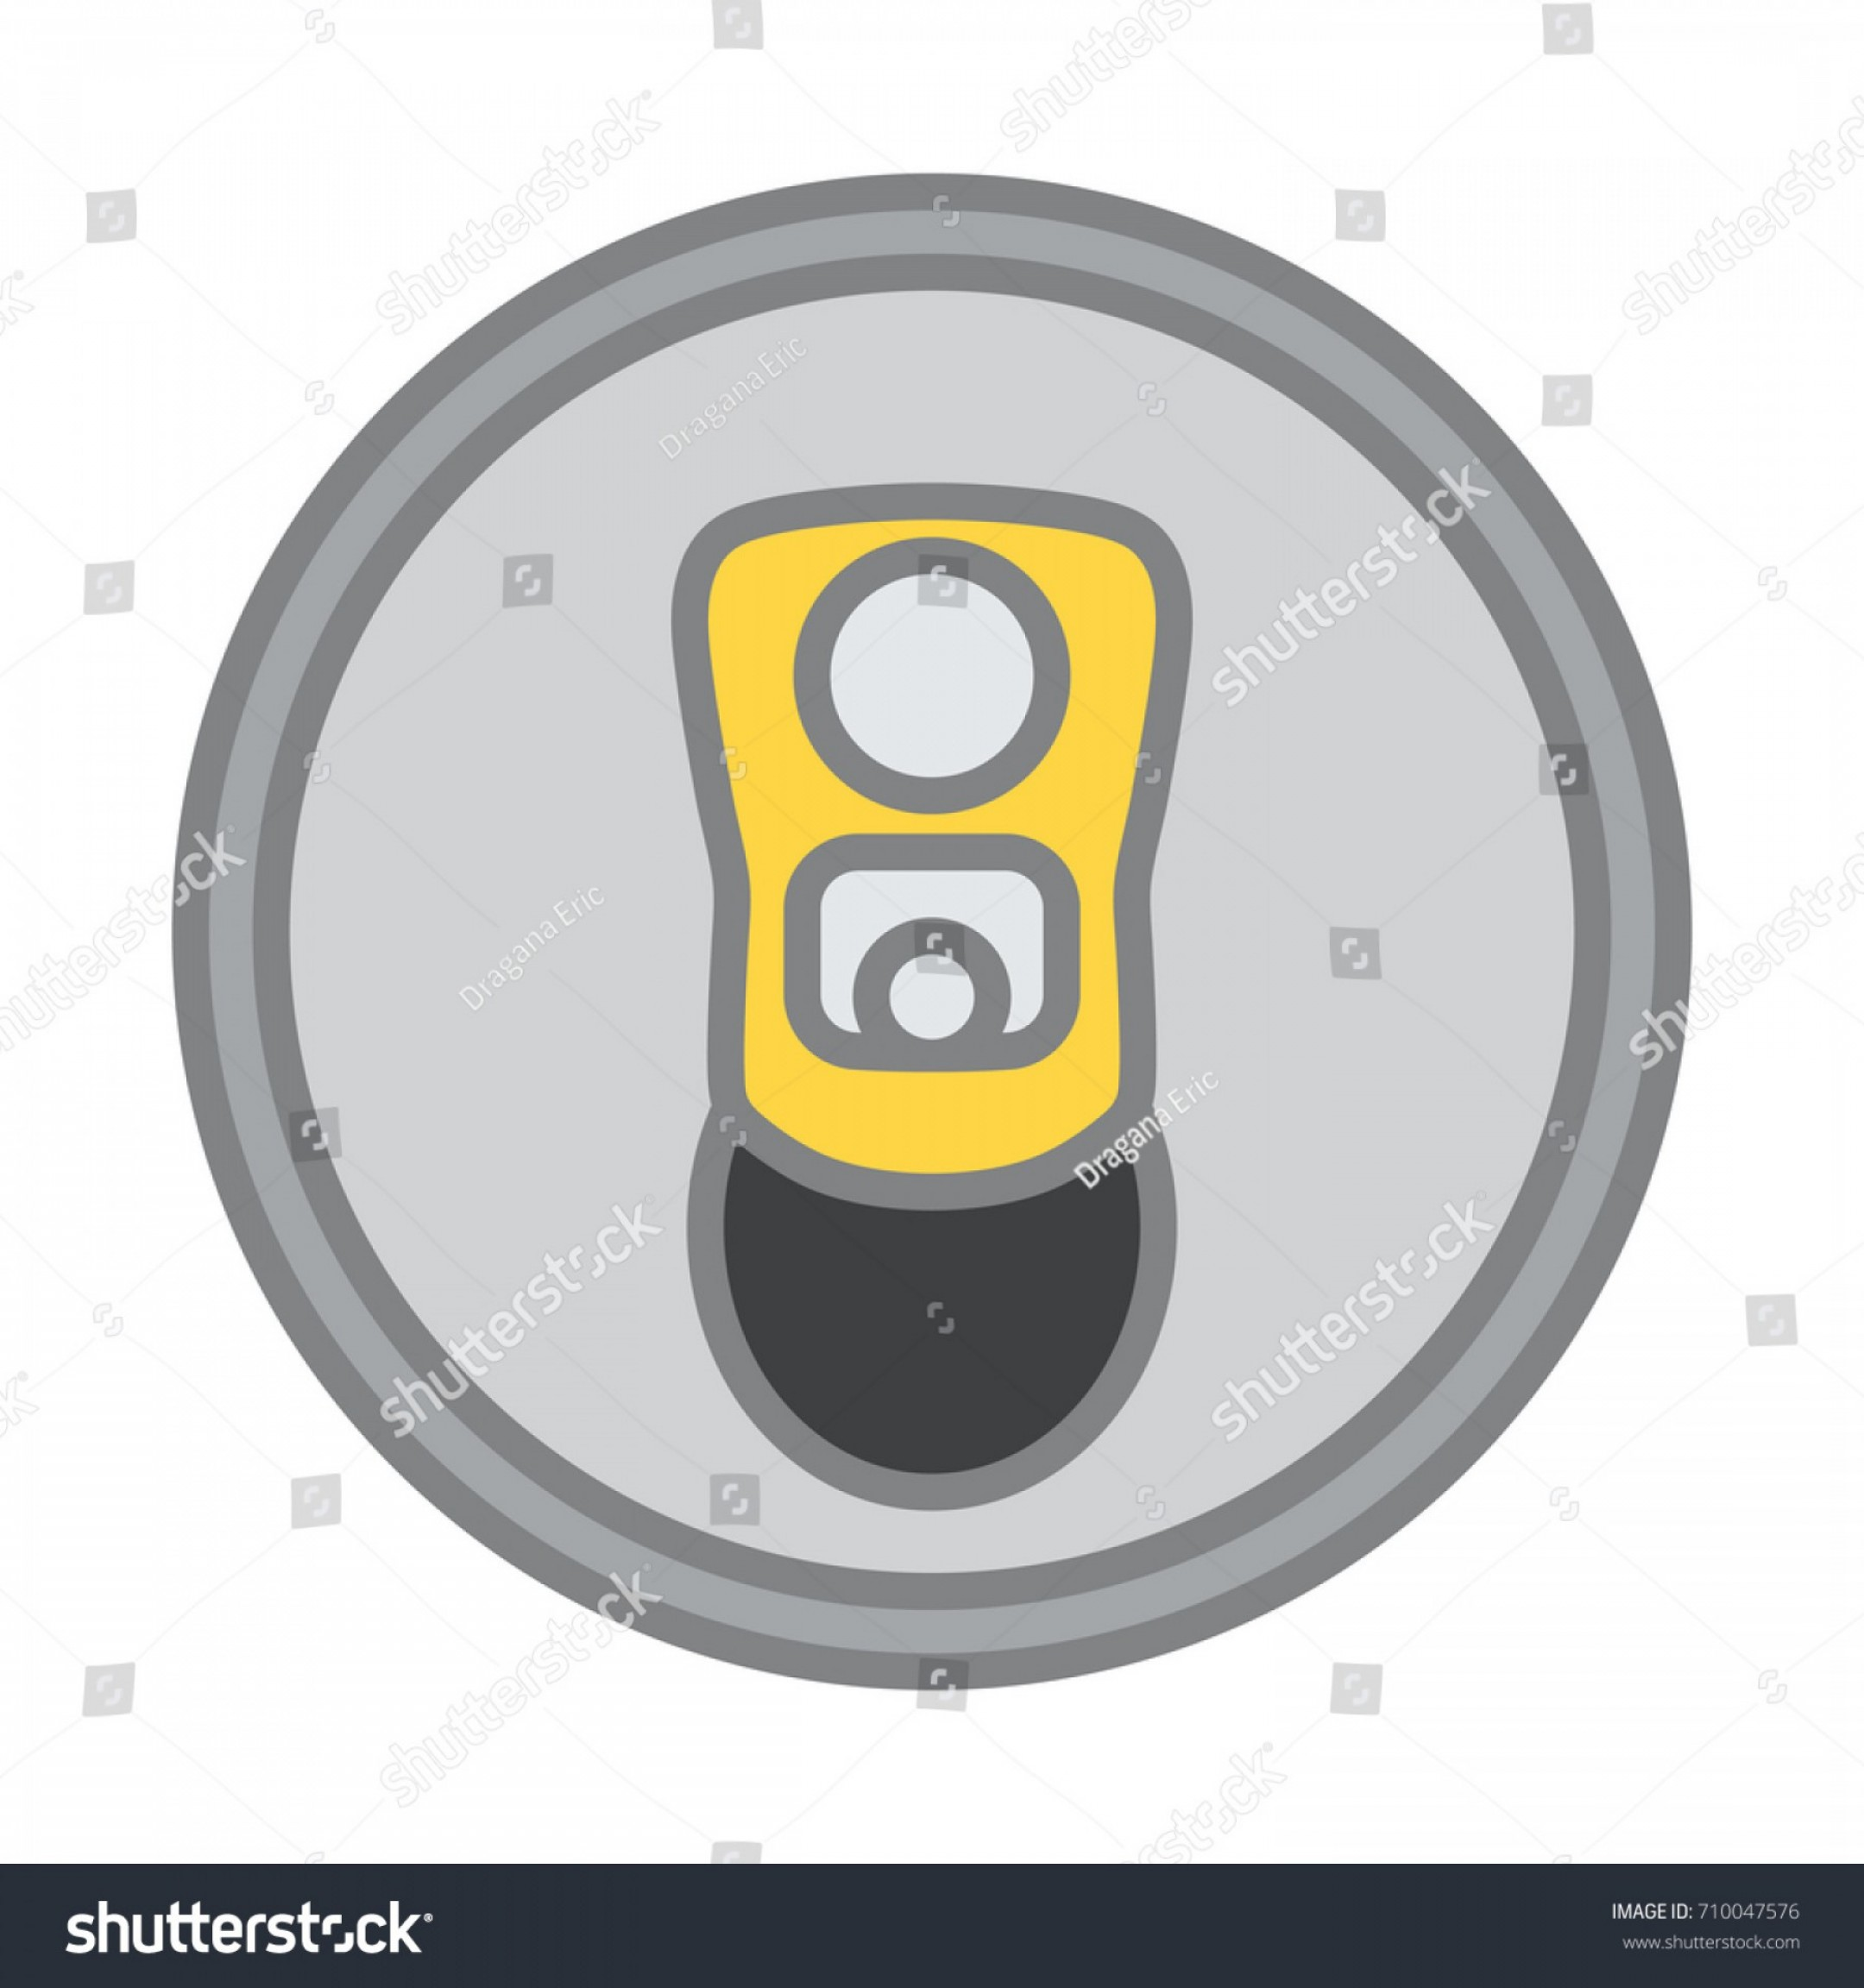 Vector Spotlight 3 Million: Top View Beer Can Opened Symbol